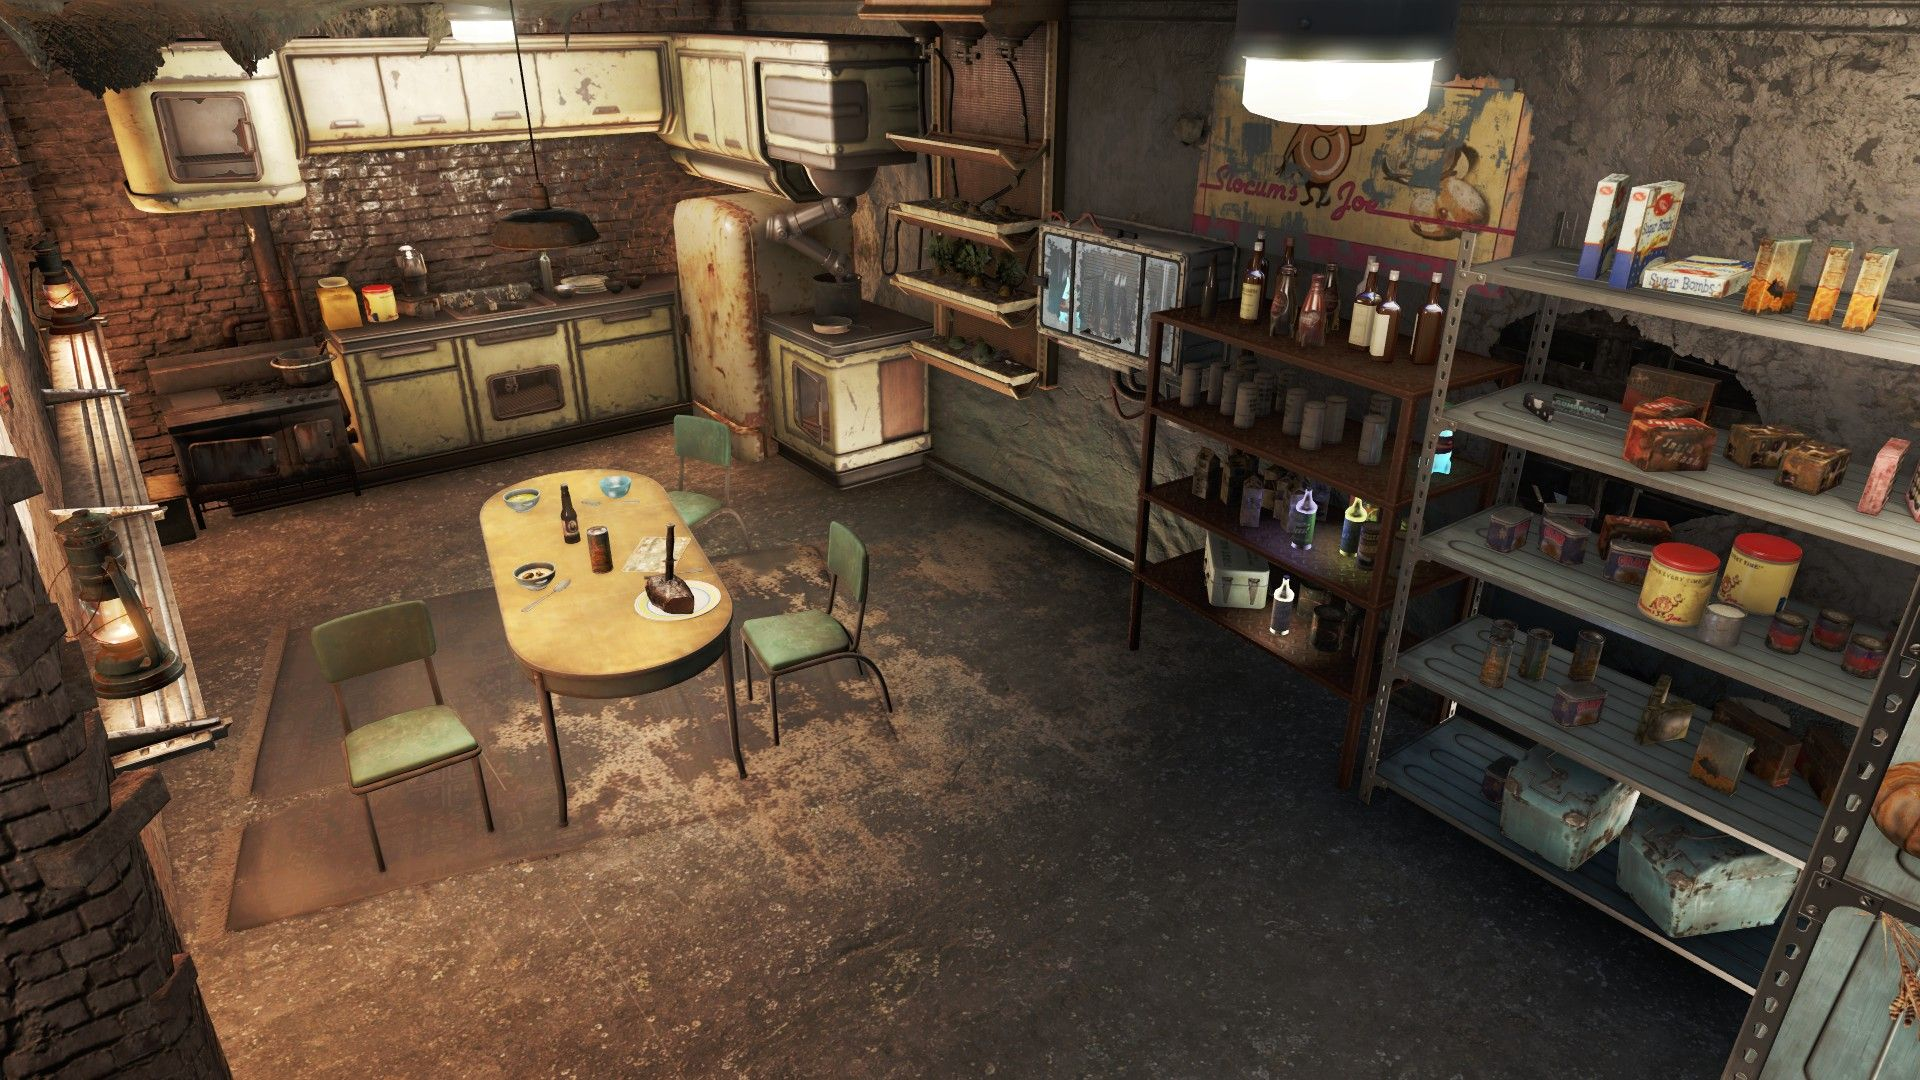 A Goodneighbor Player Home At Fallout 4 Nexus Mods And Community Fallout 4 Mods Fallout Four Xbox One Mods